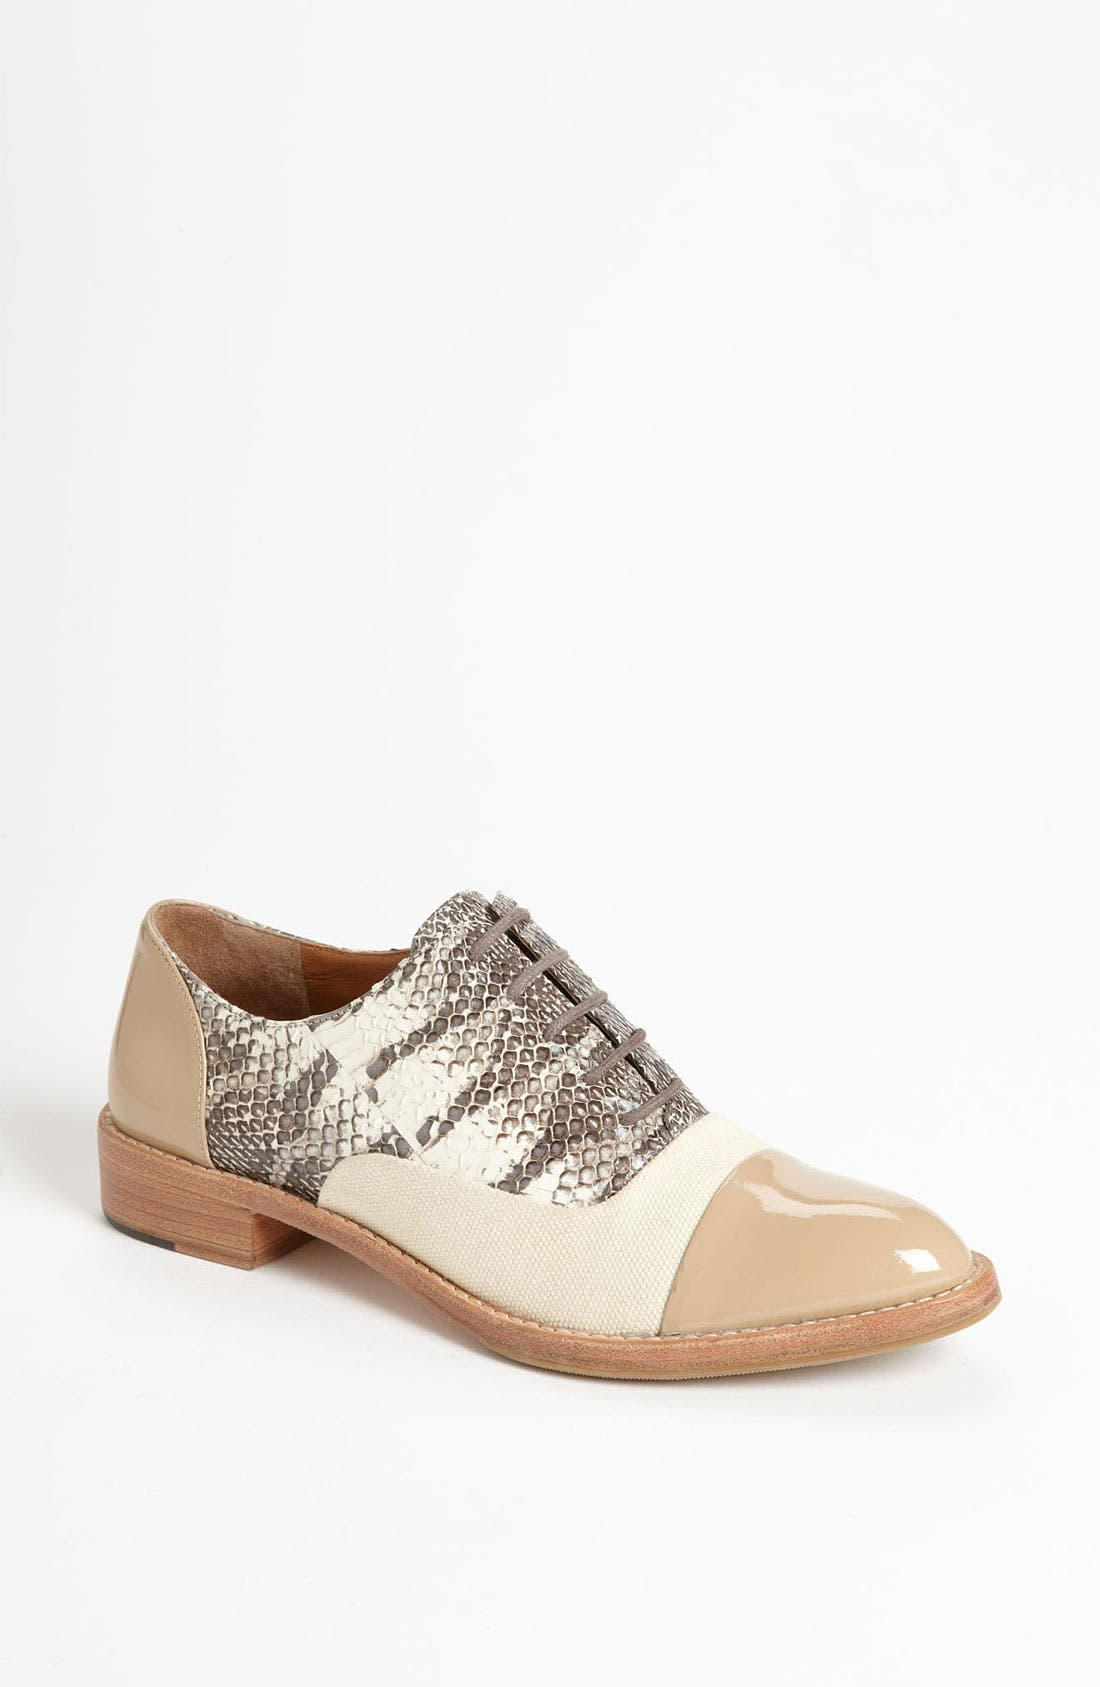 Alternate Image 1 Selected - Rachel Roy 'Laith' Flat